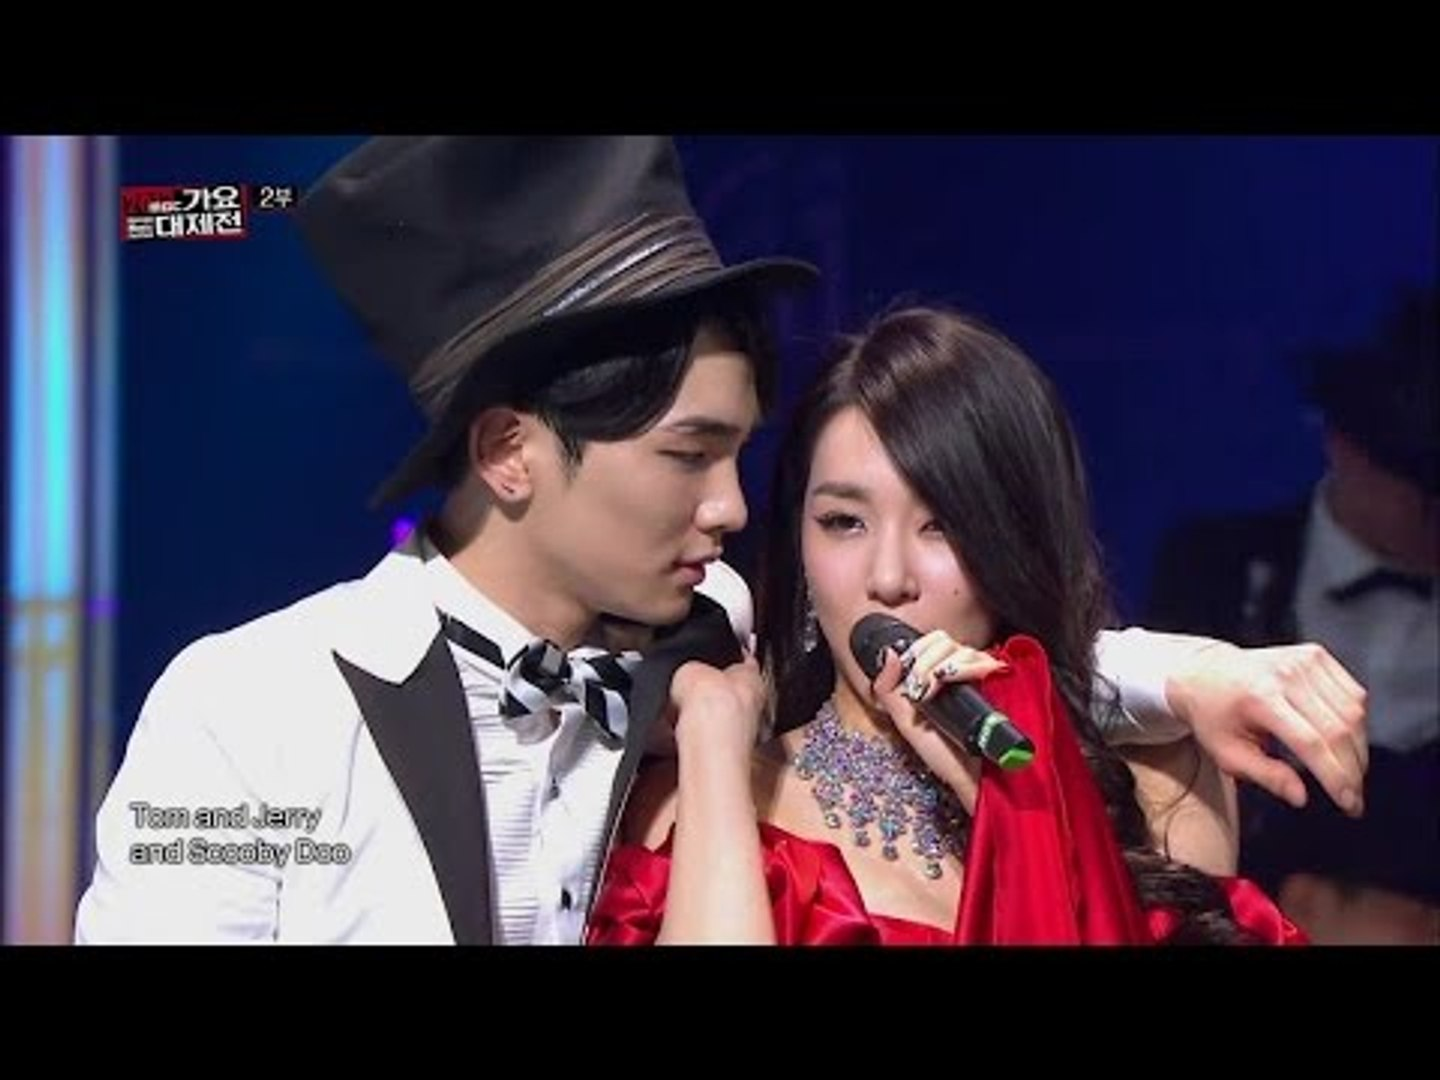 【TVPP】Tiffany(SNSD) - Bang Bang (with Key), 티파니(소녀시대) - Bang Bang (with 키) @ 2013 KMF Live